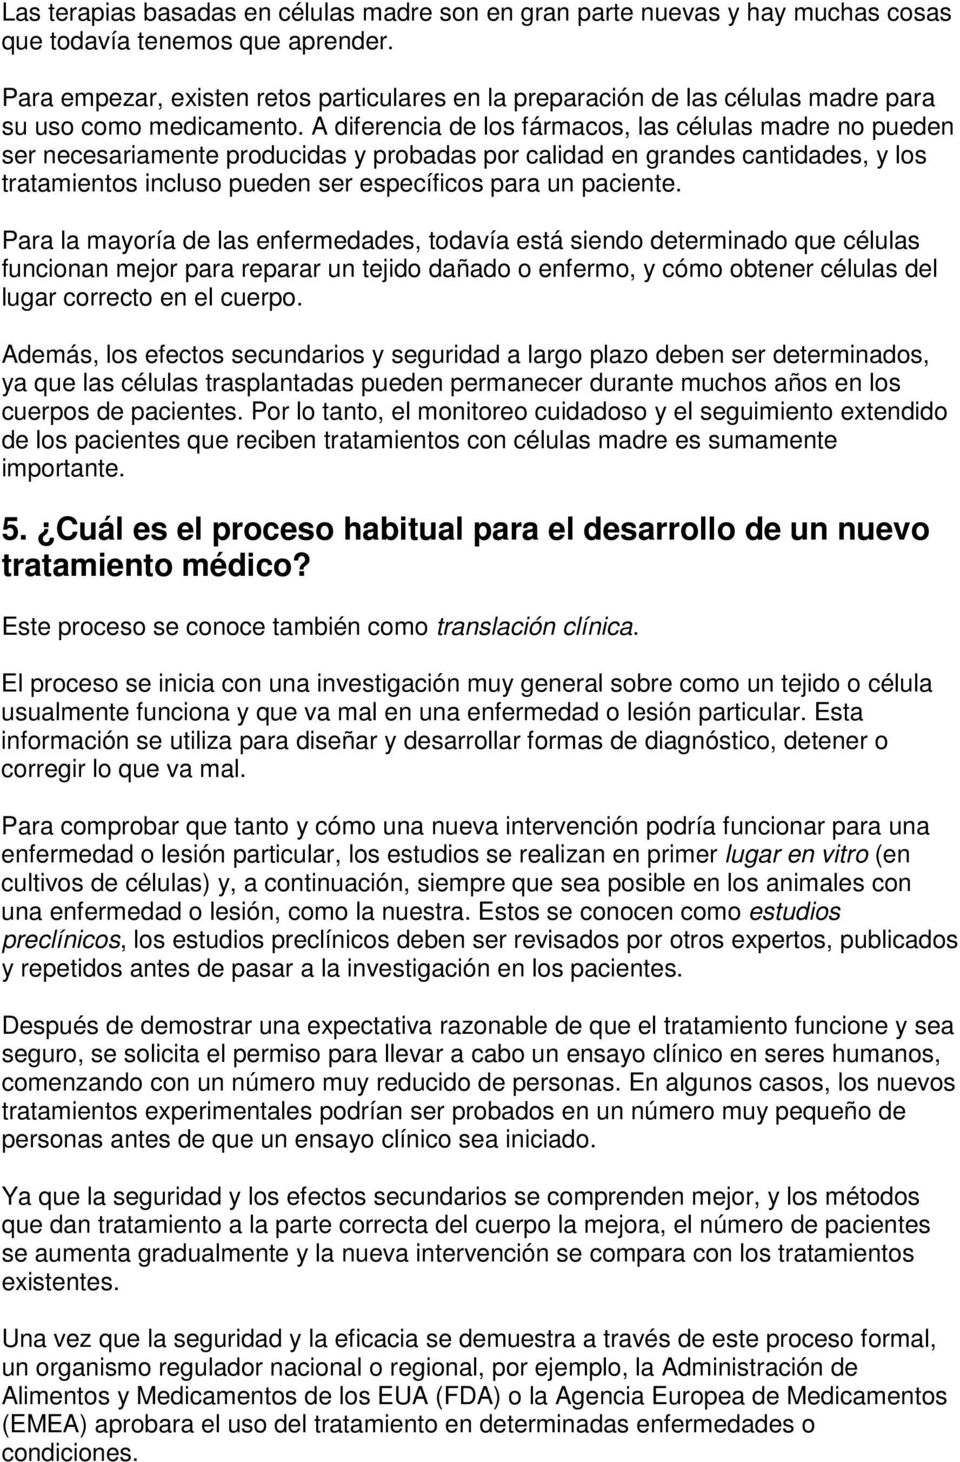 manual del paciente sobre terapias con células madre para la diabetes